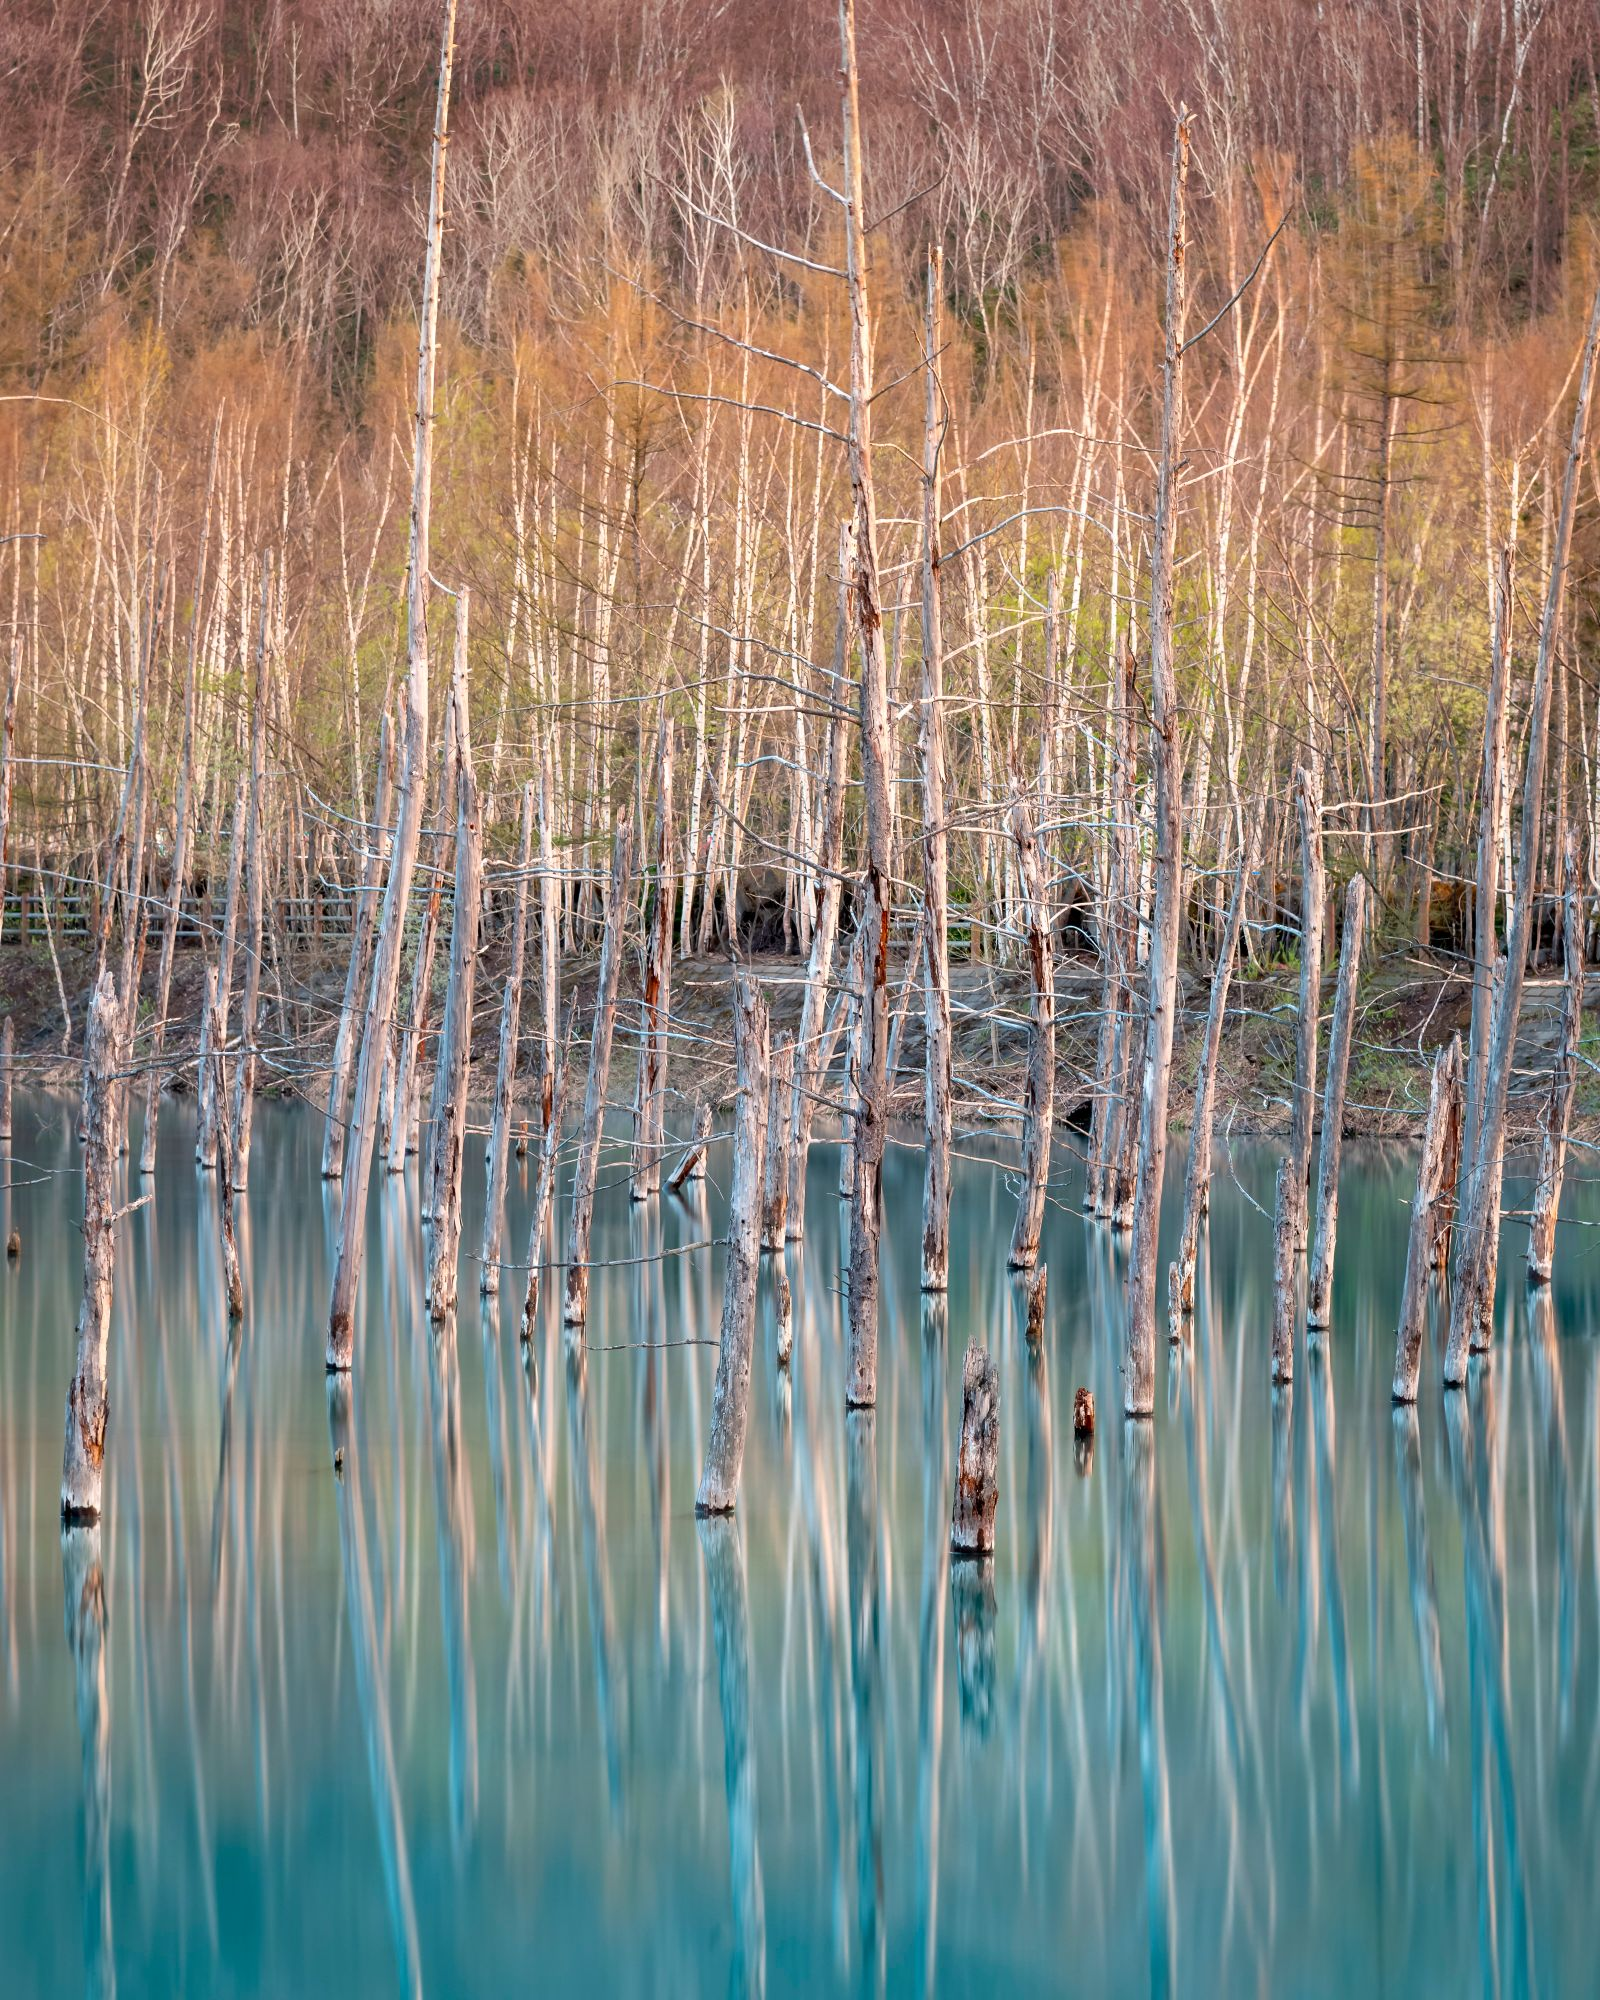 The International Landscape Photographer of the Year/ Top 101